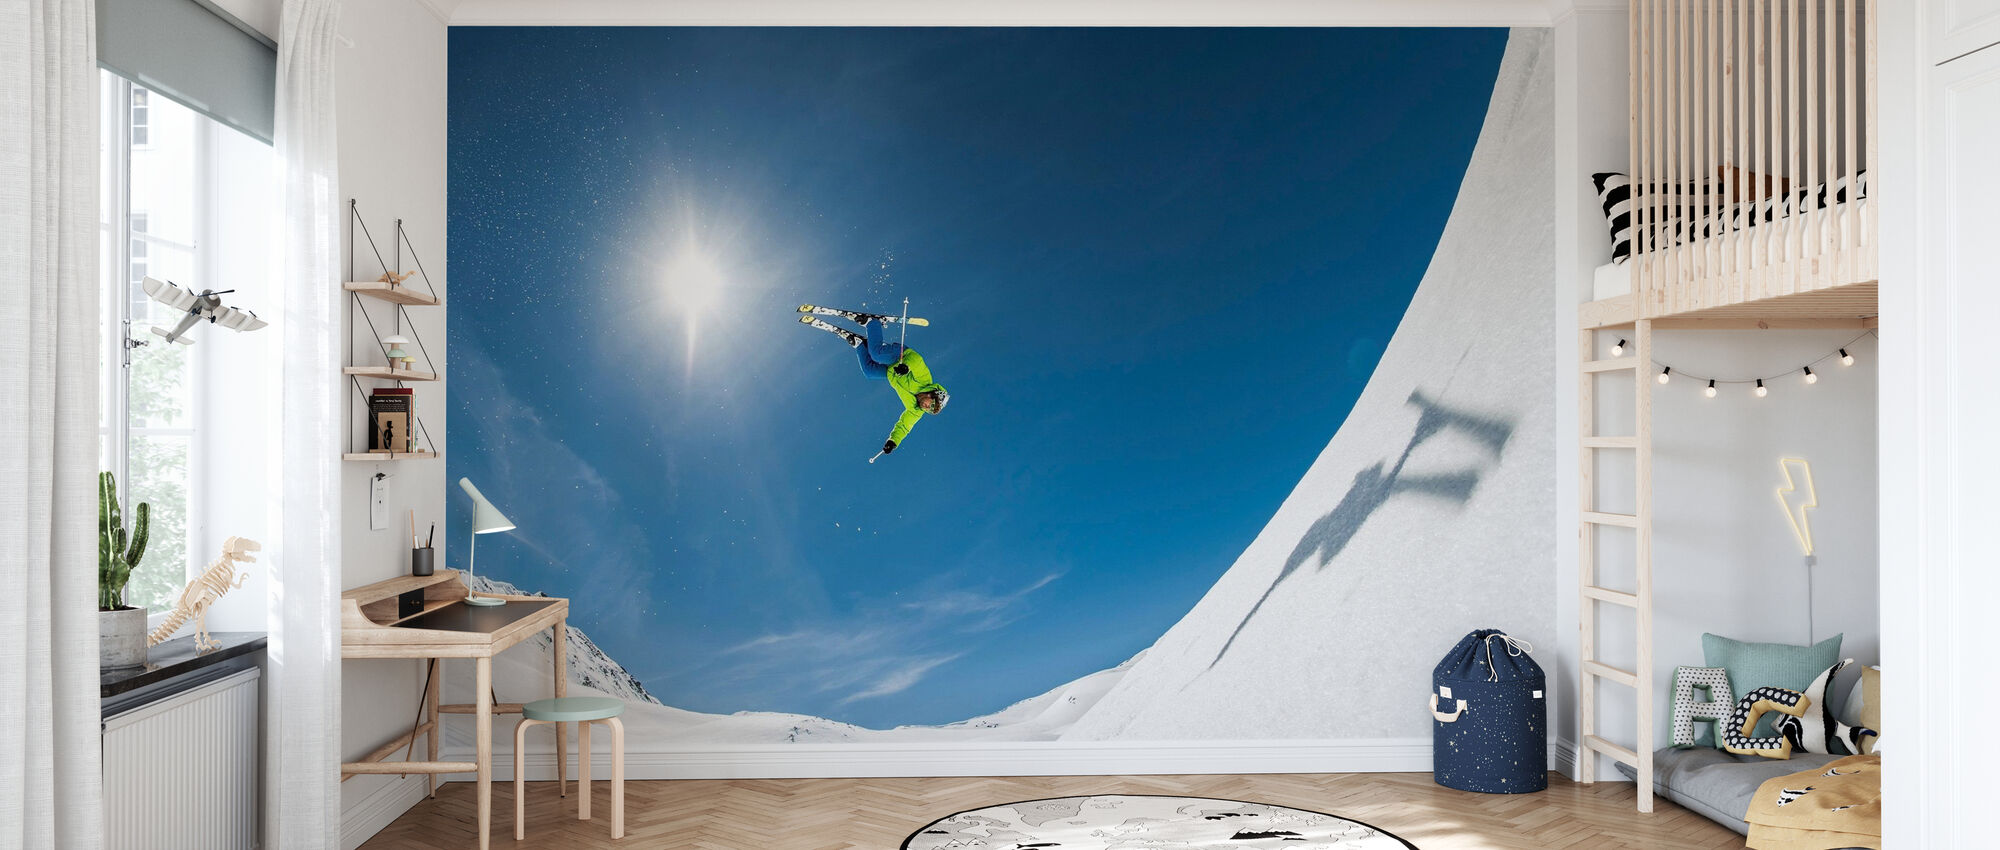 Backcountry Backflip - Behang - Kinderkamer